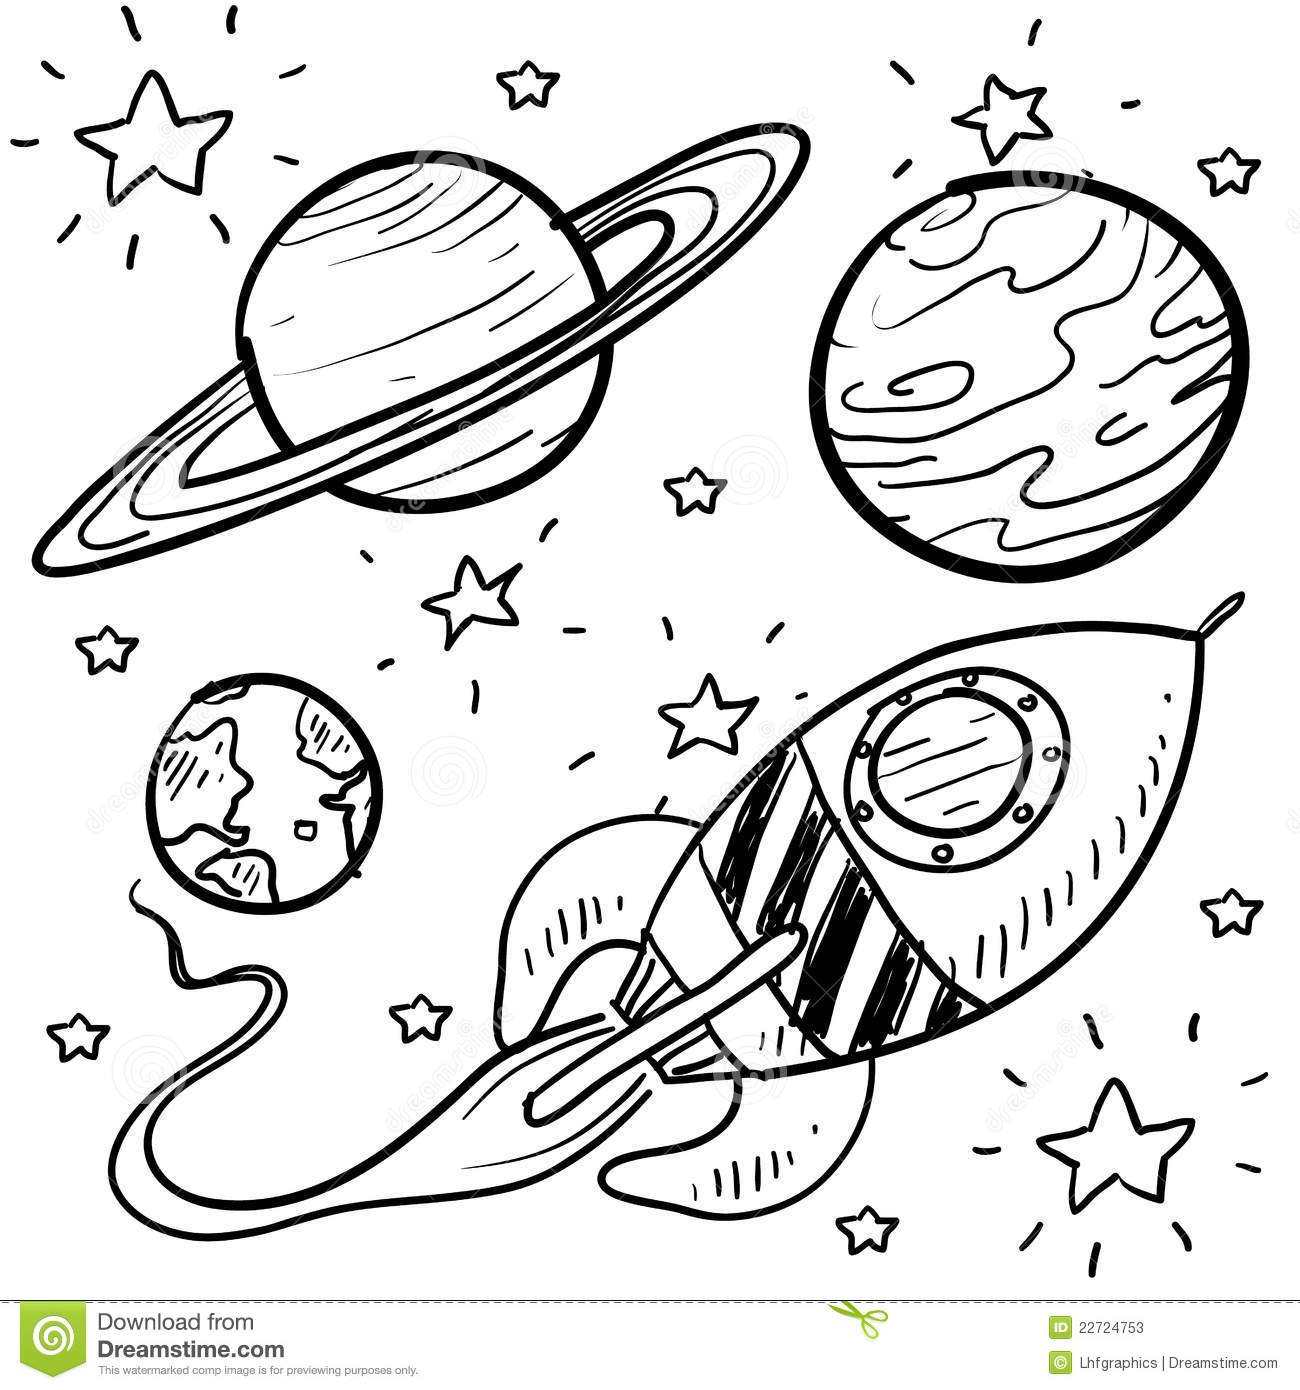 astronomy clipart black and white - photo #35